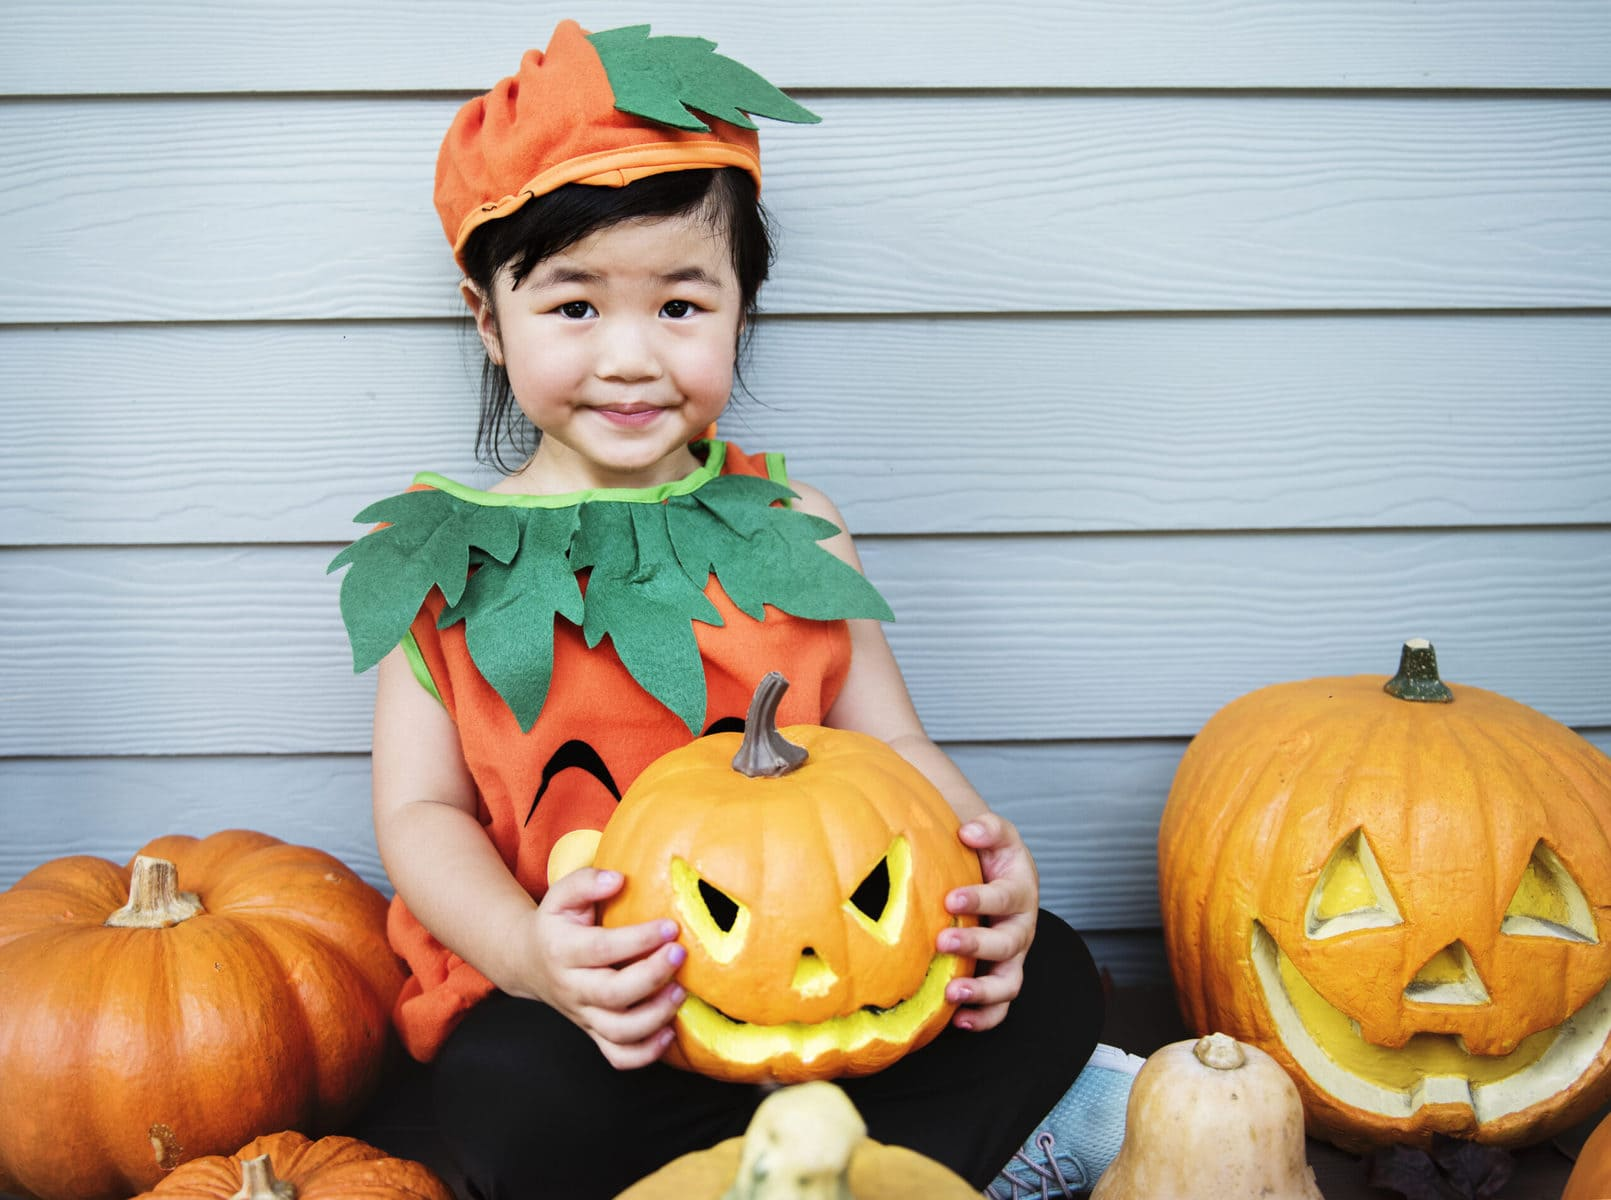 Young girl in pumpkin costume sitting with pumpkins for Halloween.